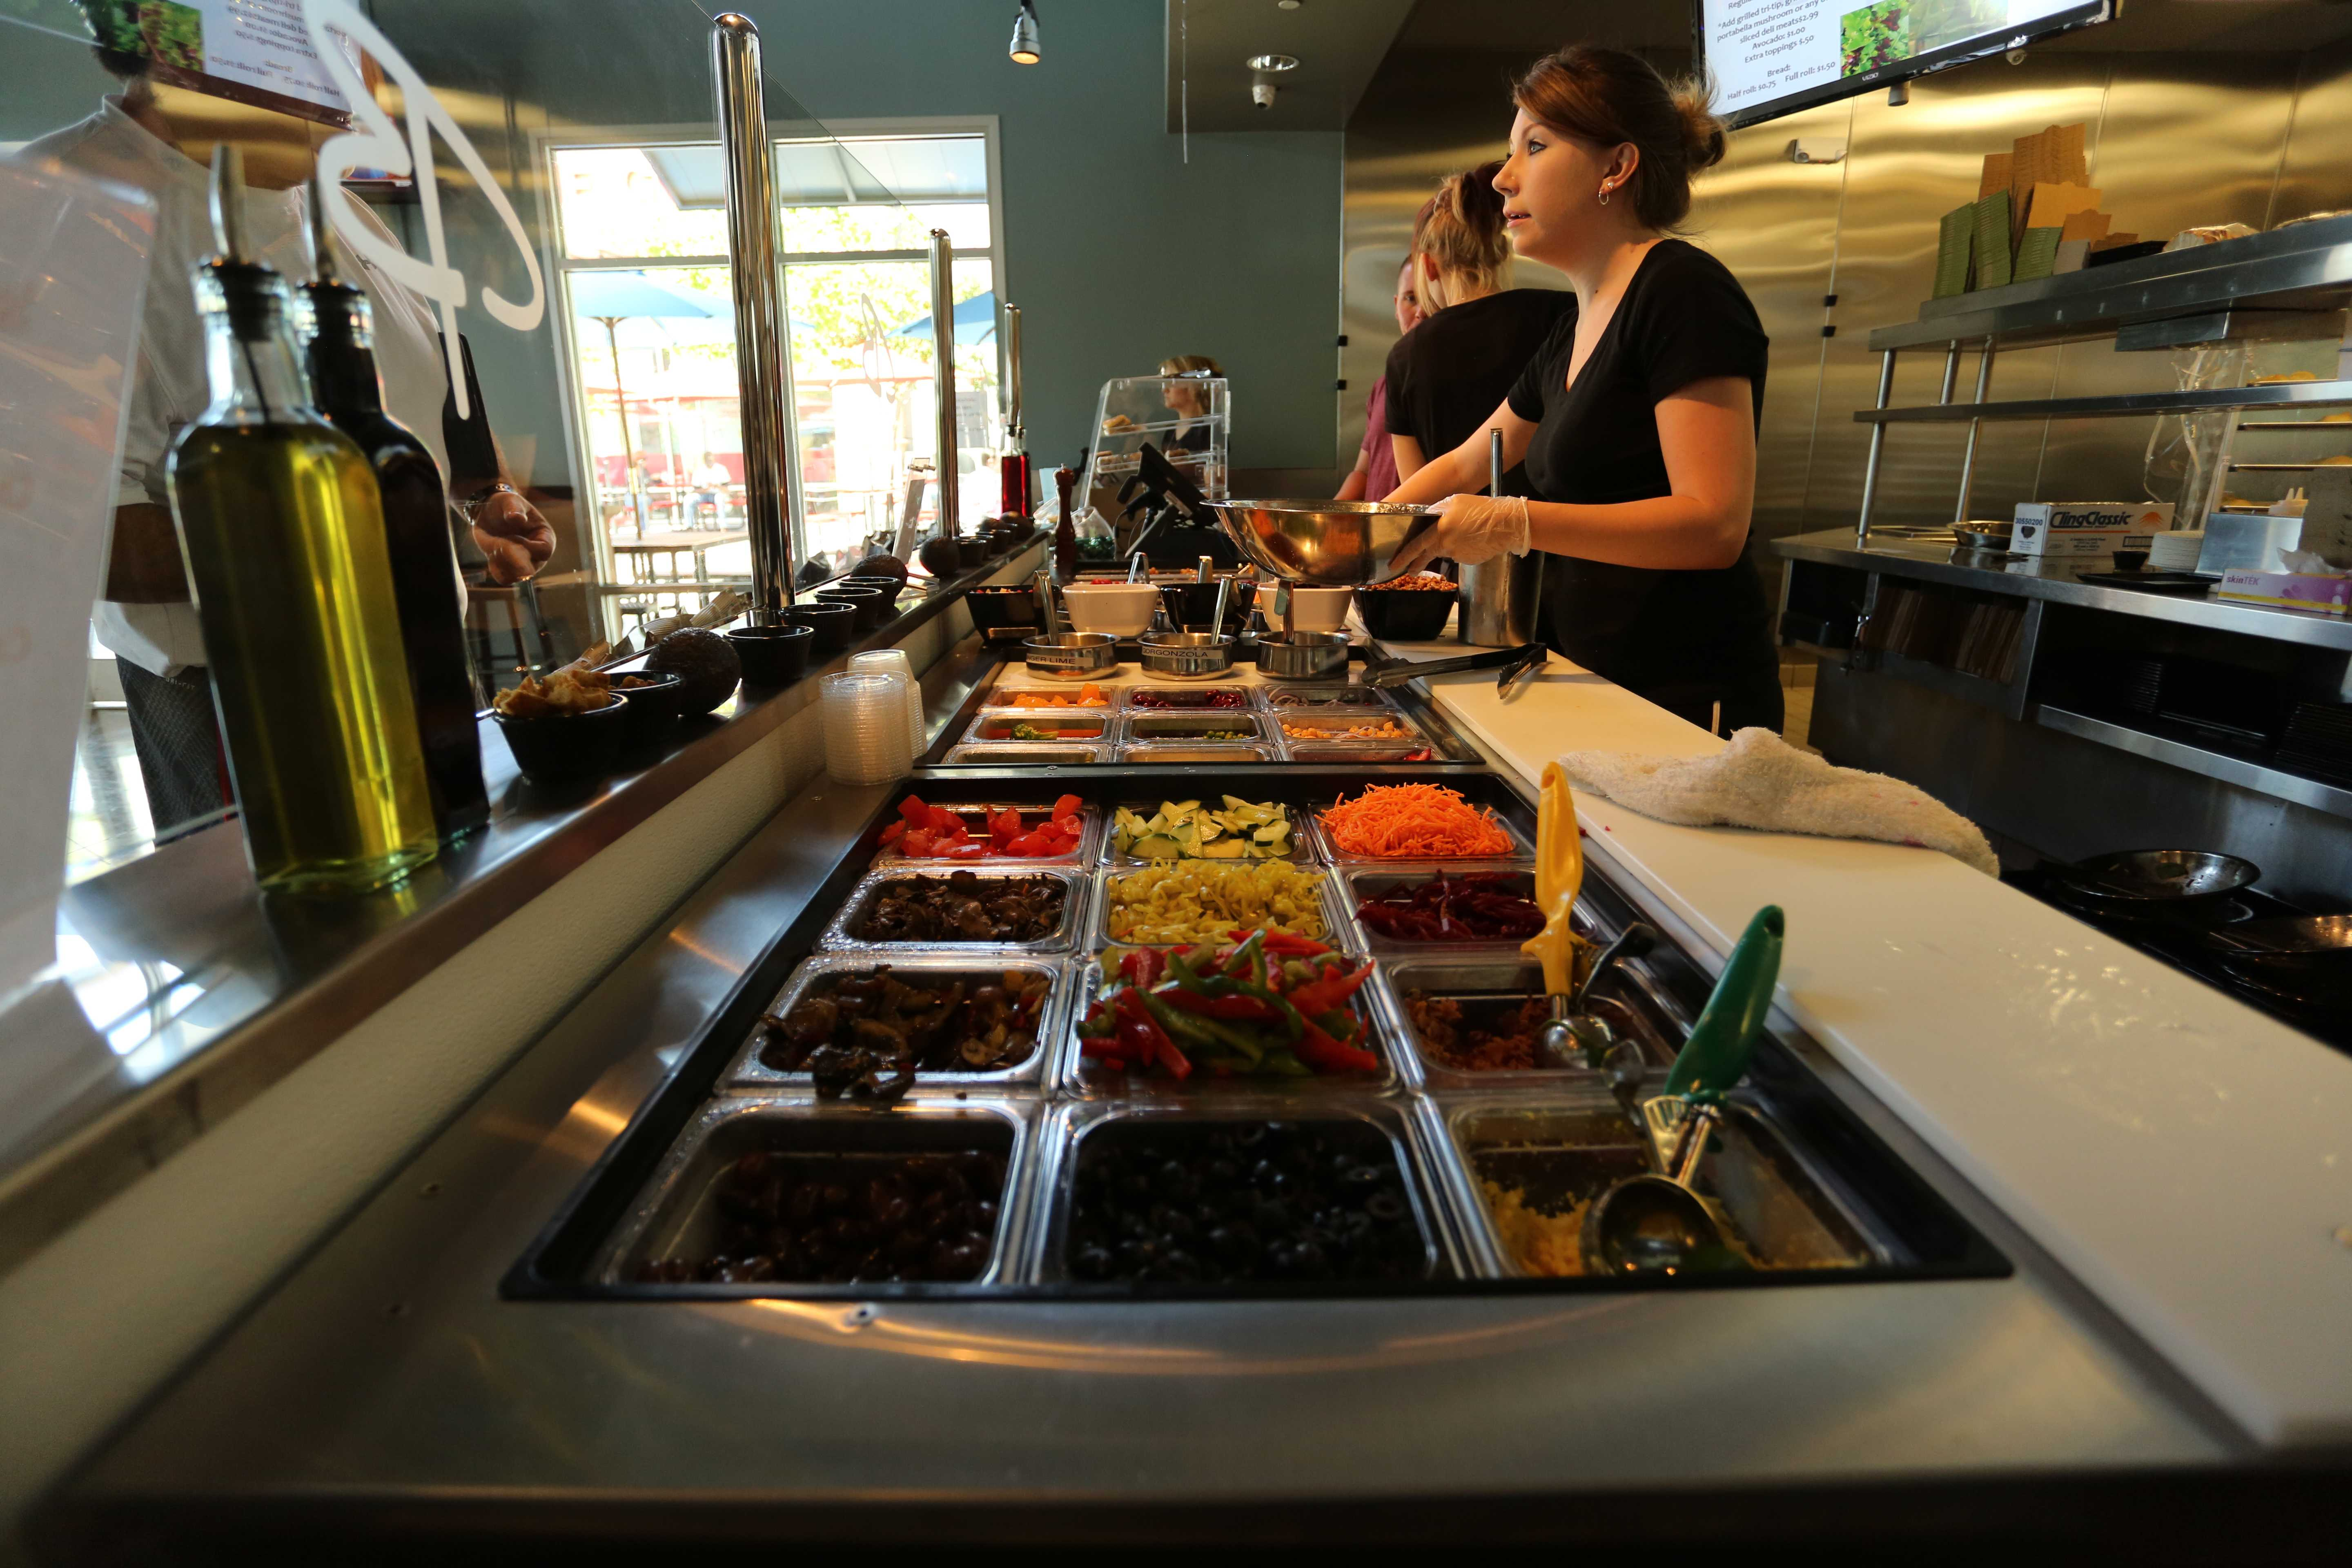 A server prepares a personalized salad for a customer at Bianchini's, a new restaurant on Mendocino Avenue that offers a variety of sandwiches and salads.